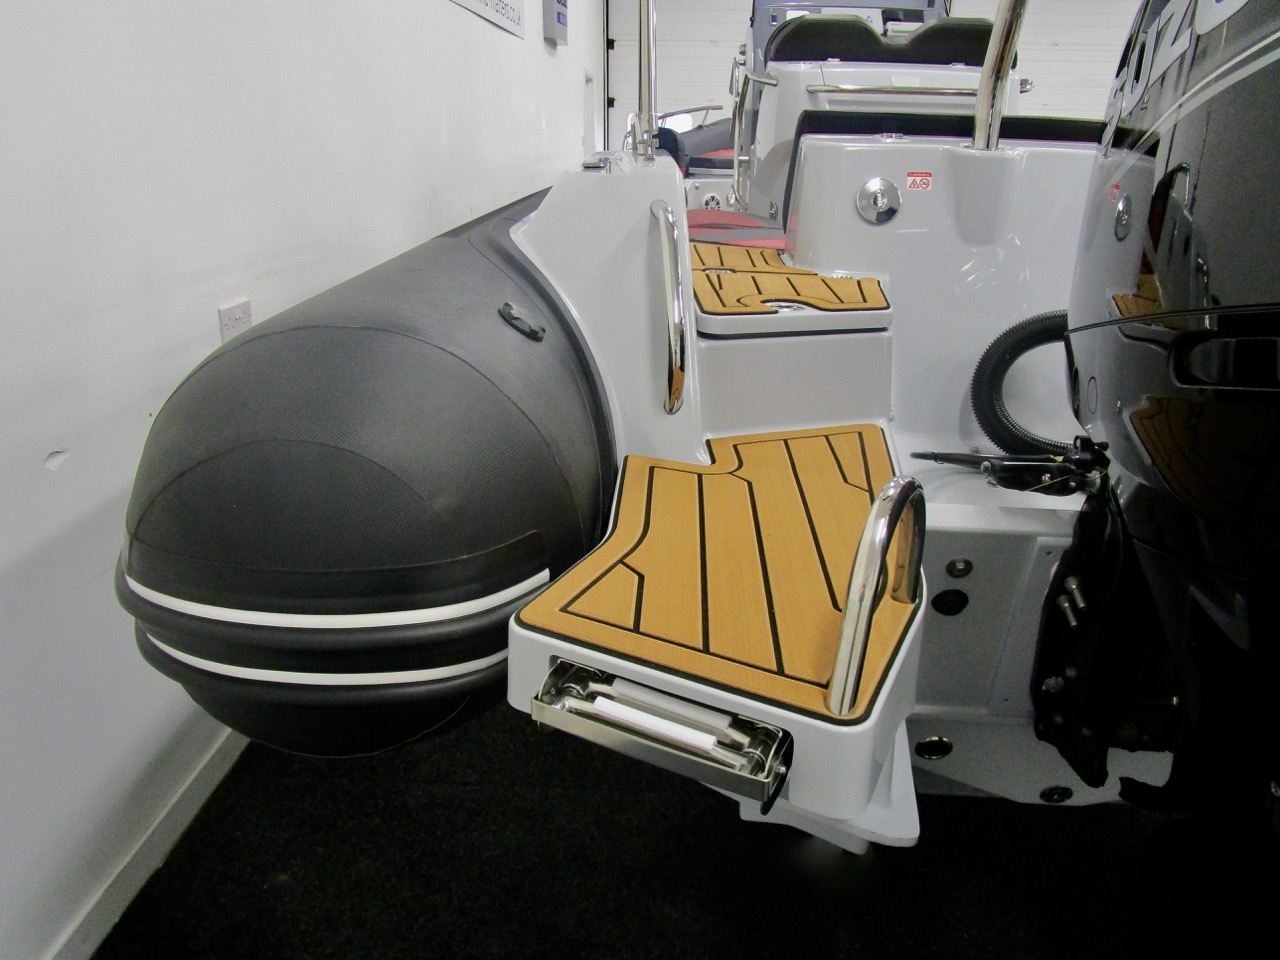 GRAND G750 RIB bathing ladder stowed